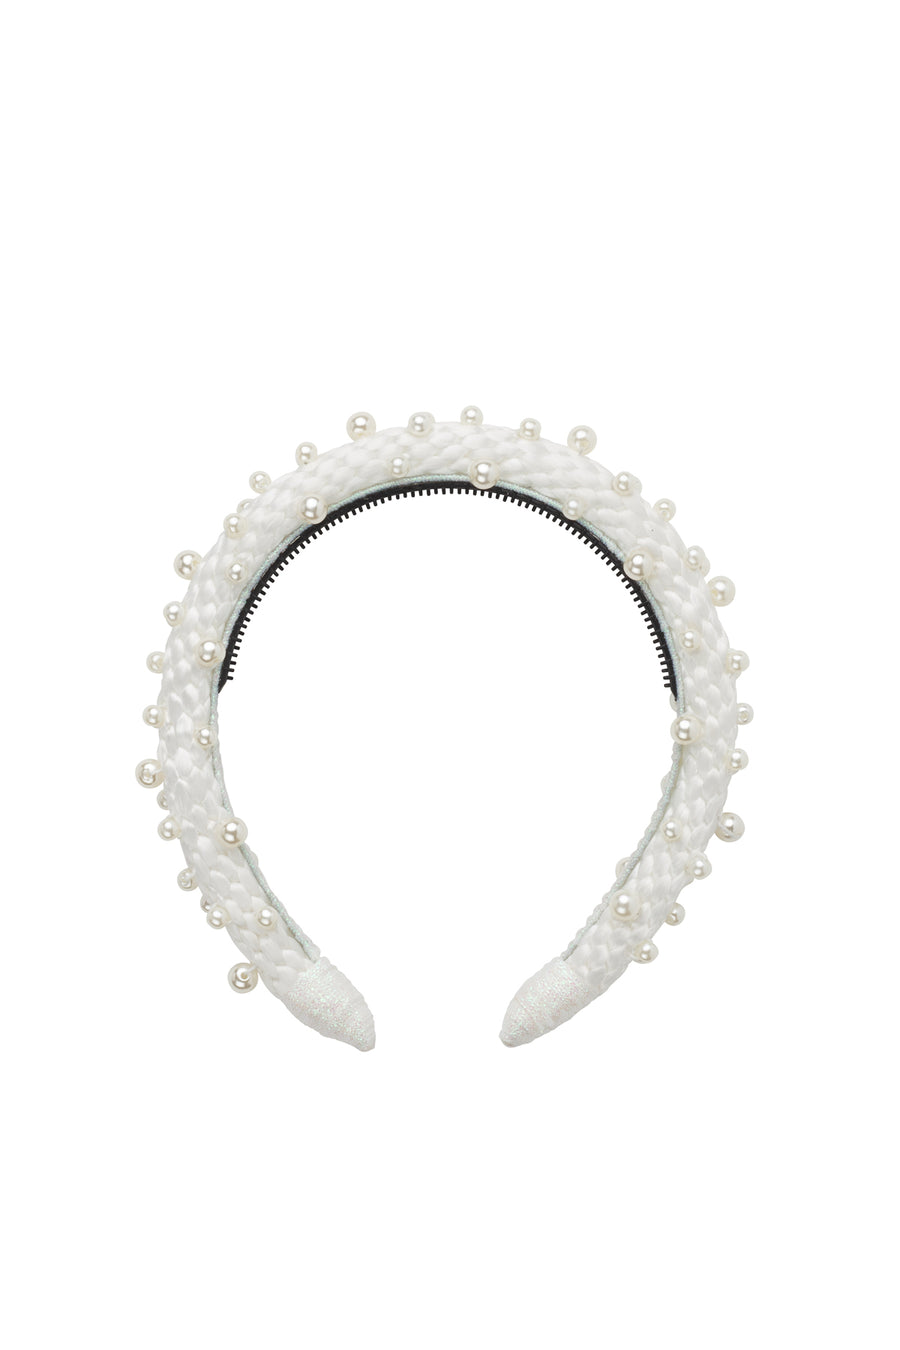 Pearl Queen Women's Headband - Dove White